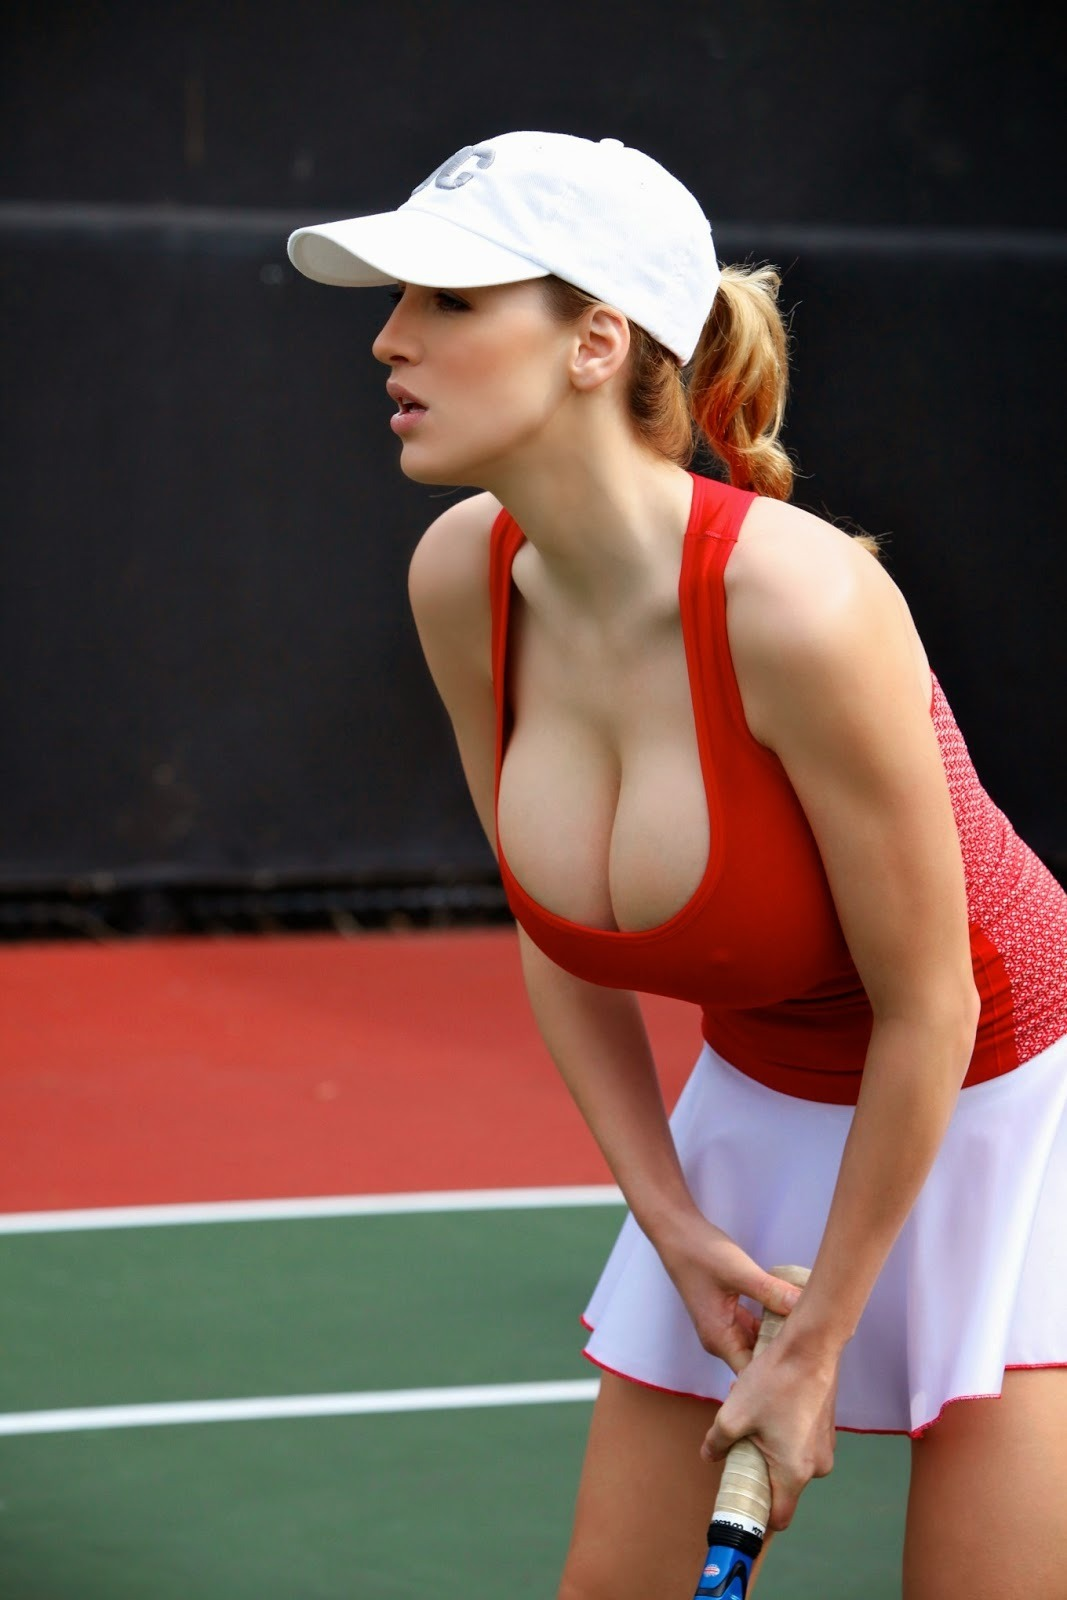 nude pictures of tennis players  28730